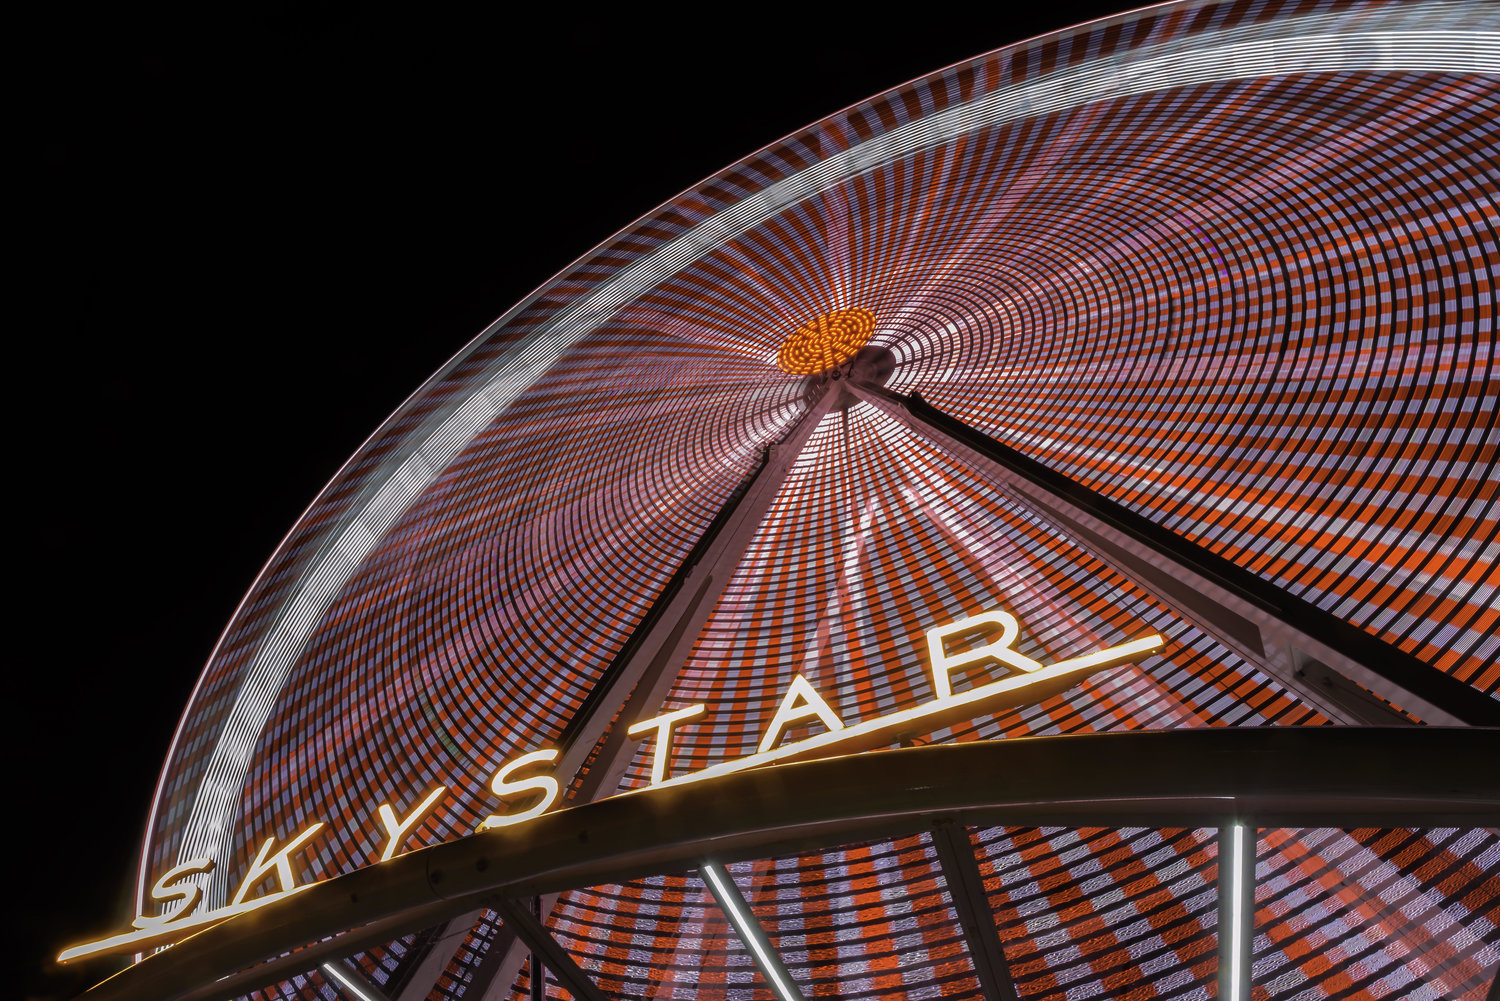 #SkyStarWheel - THE SKYSTAR OBSERVATION WHEEL IS EQUIPPED WITH 36 CLIMATE-CONTROLLED GONDOLAS. EACH GONDOLA CAN HOLD UP TO 6 PEOPLE. GUESTS ARE TREATED TO SPECTACULAR VIEWS AS THEY SOAR NEARLY 15 STORIES OVER CINCINNATI'S RIVERFRONT PARK!